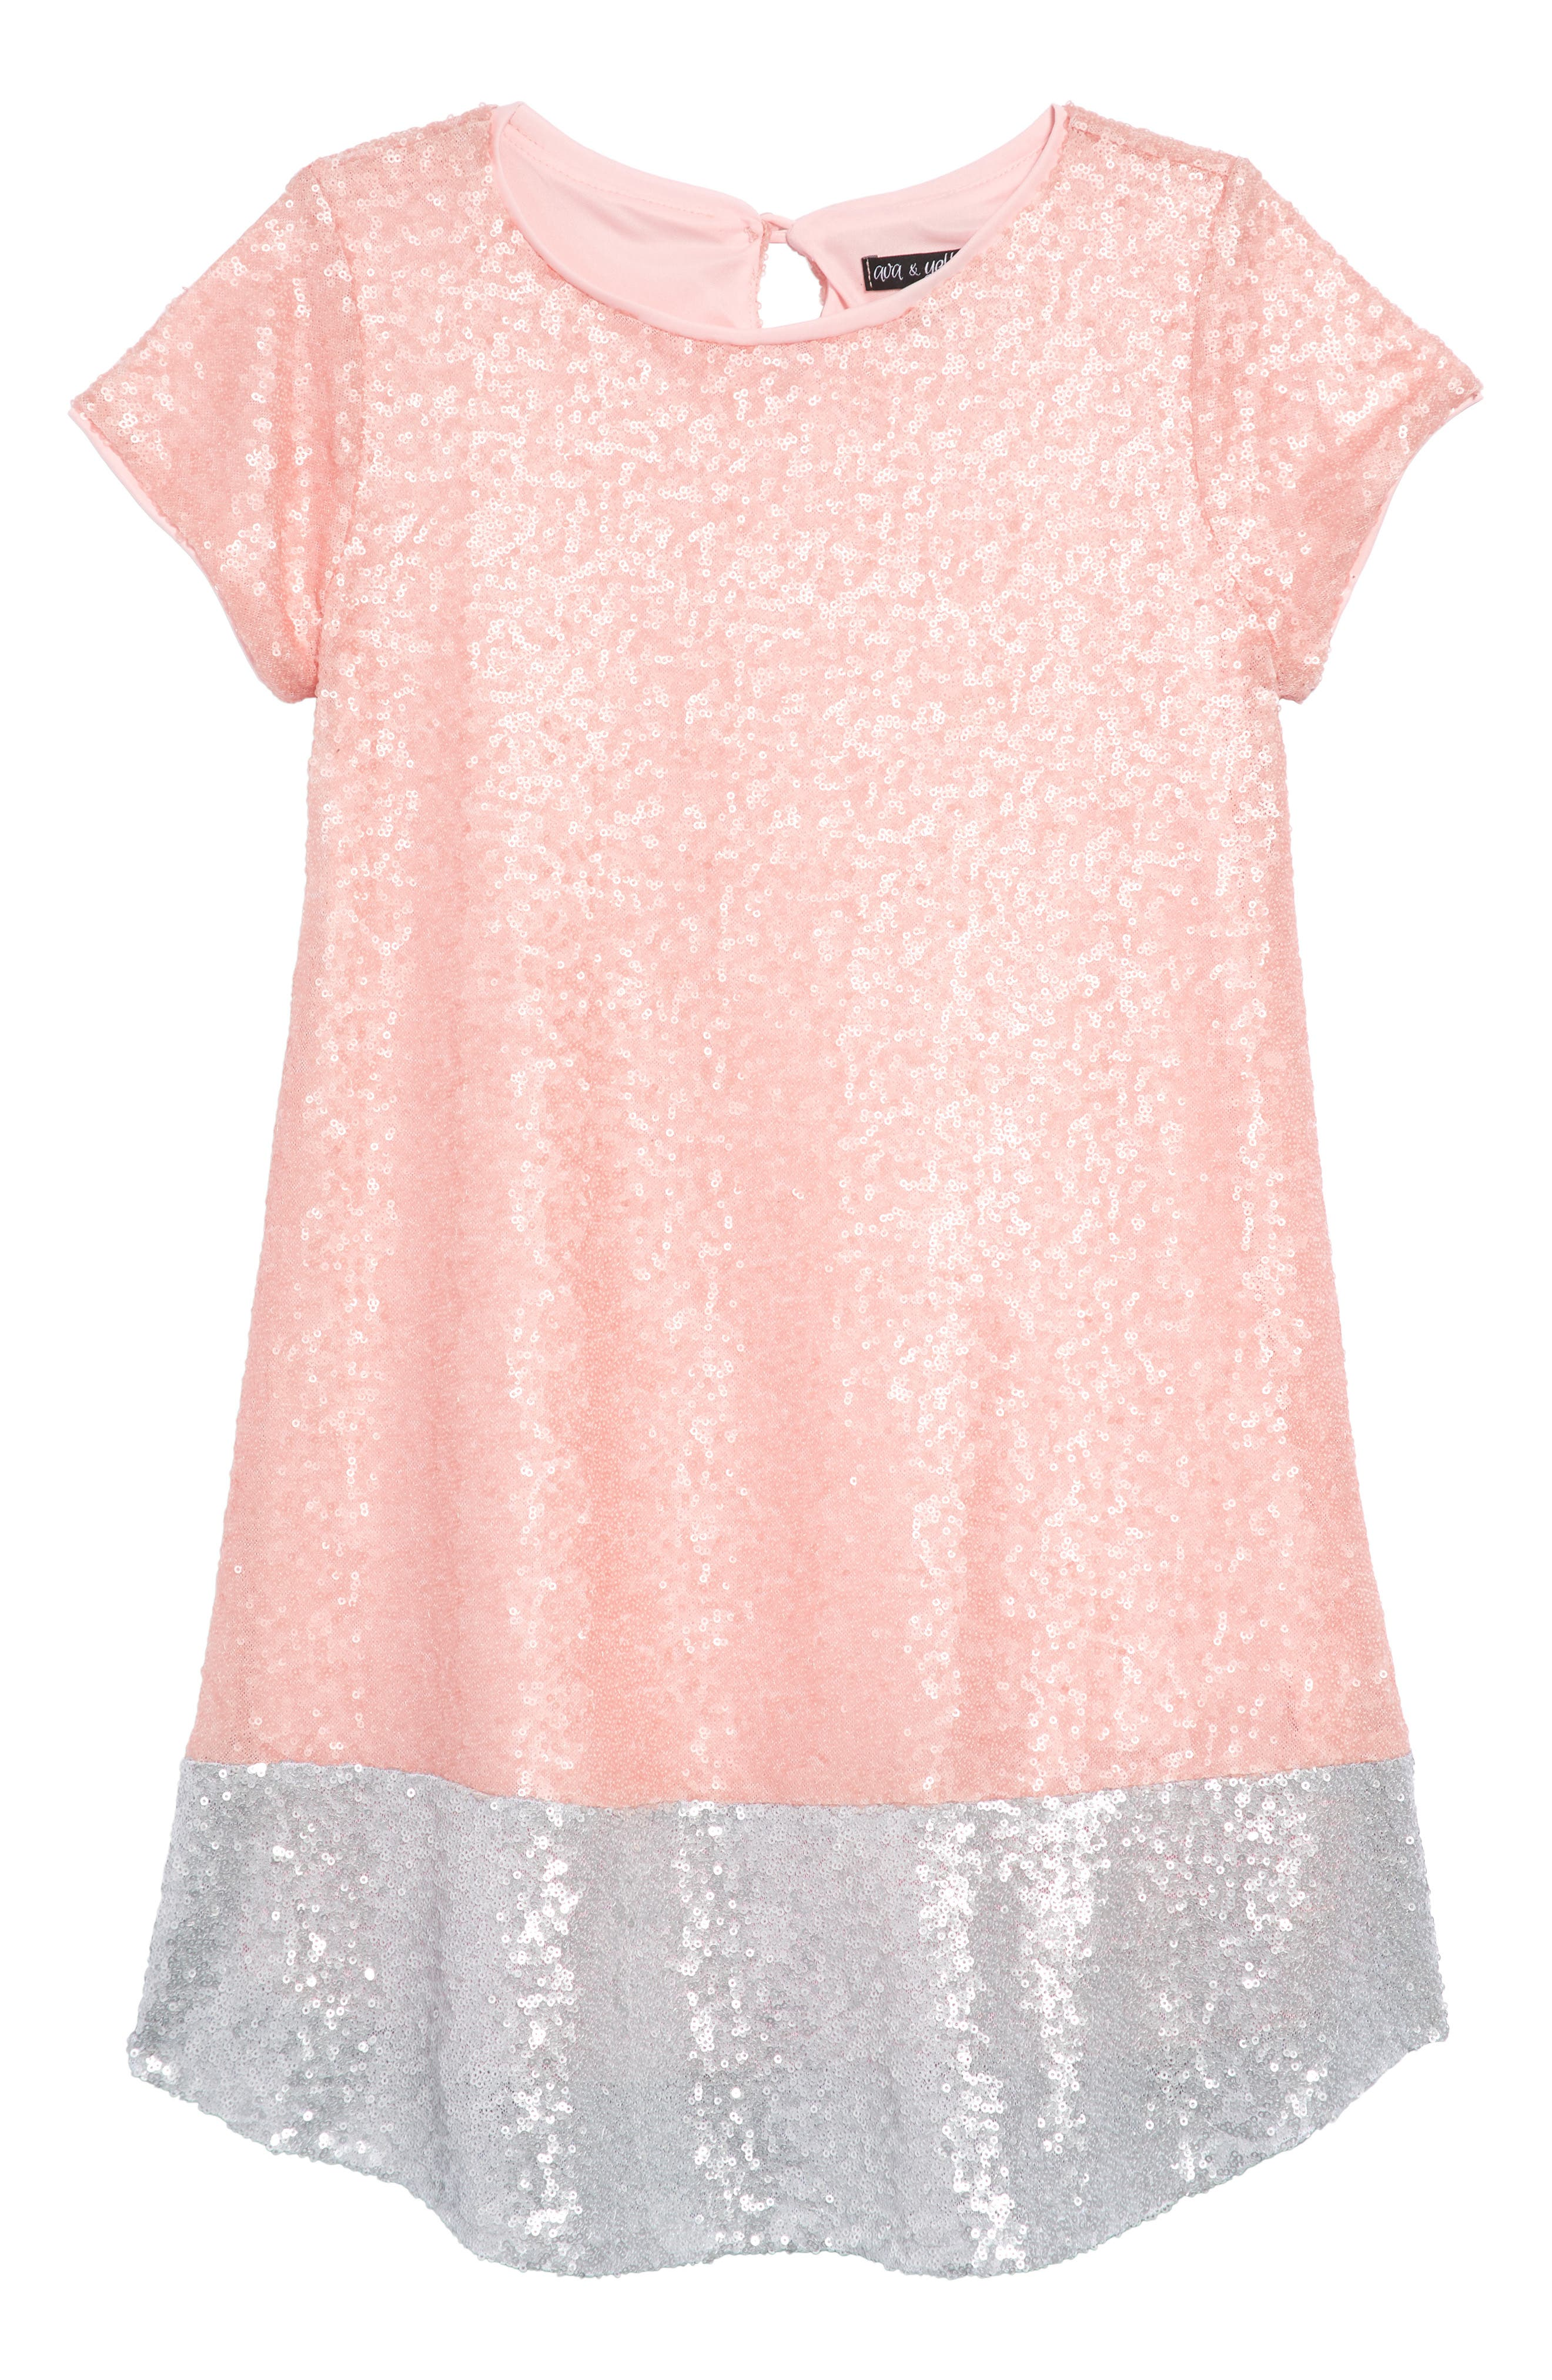 Ava & Yelly Sequin Colorblock Trapeze Dress (Big Girls)